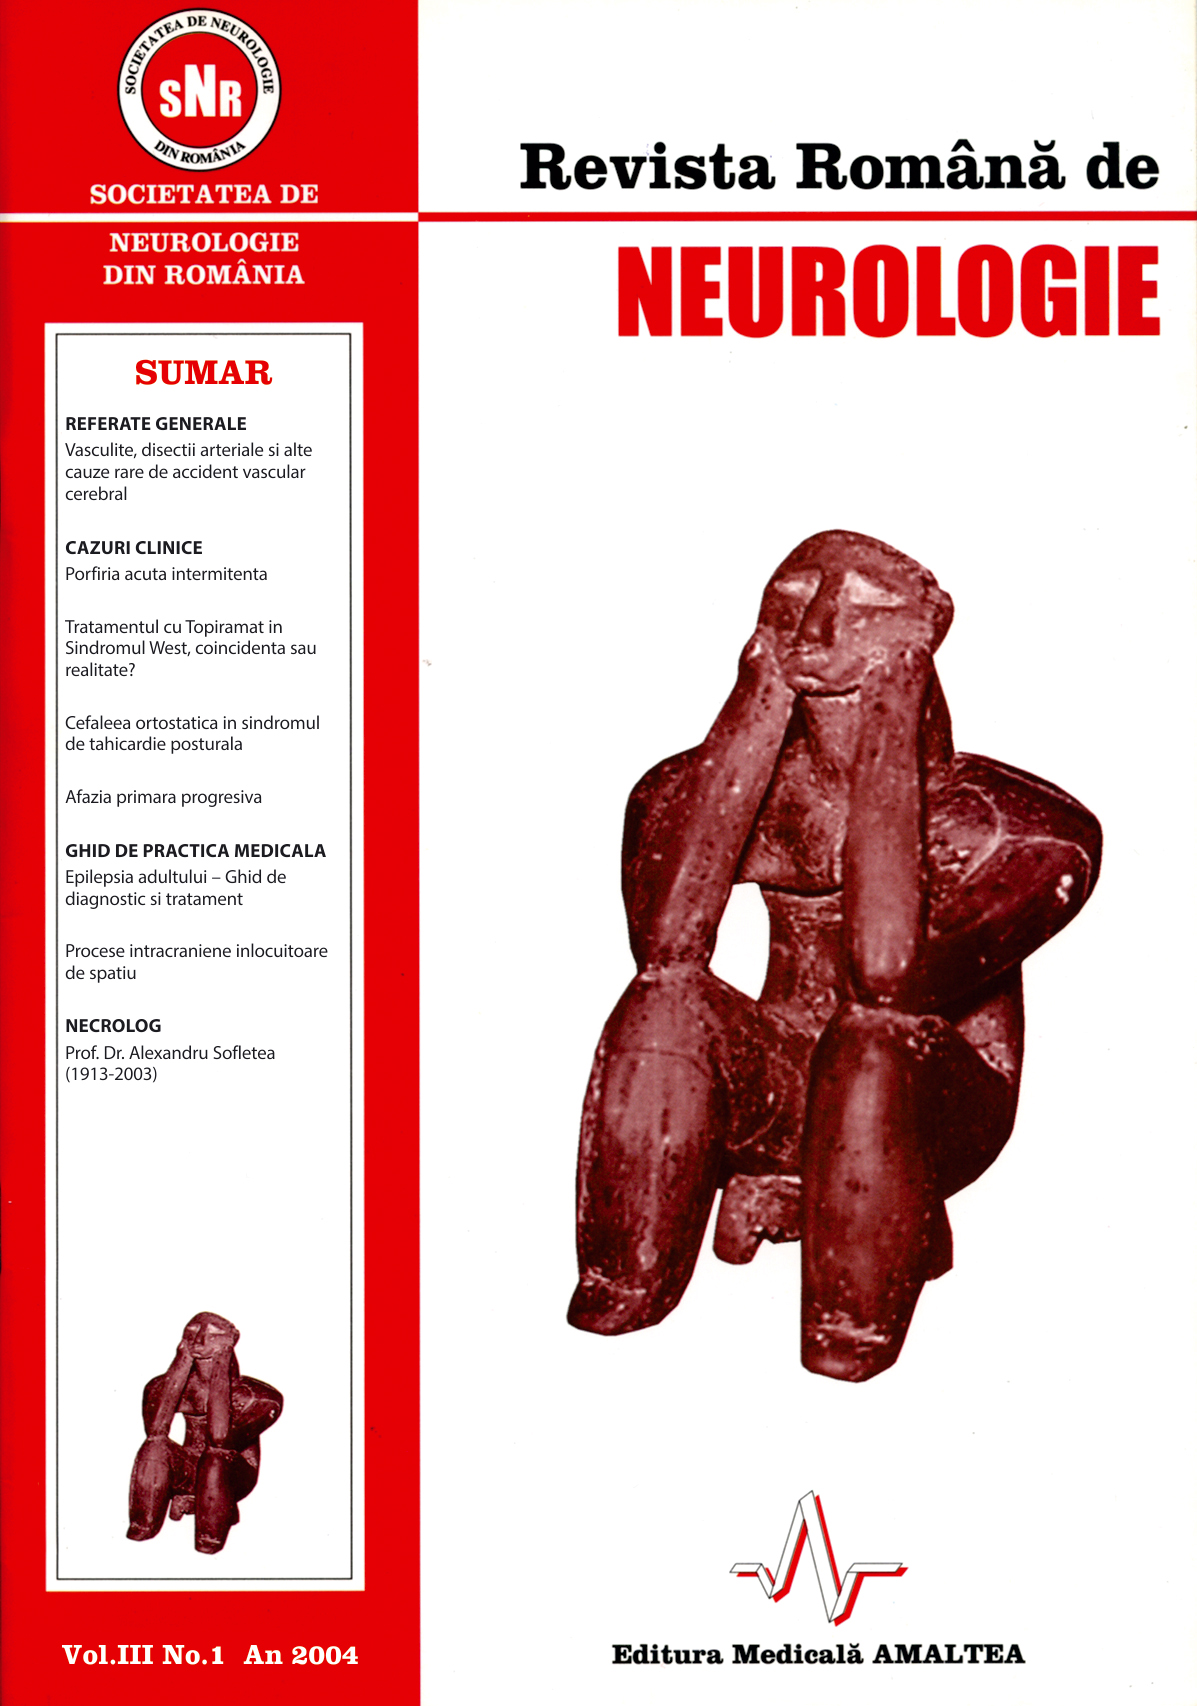 Romanian Journal of Neurology, Volume III, No. 1, 2004